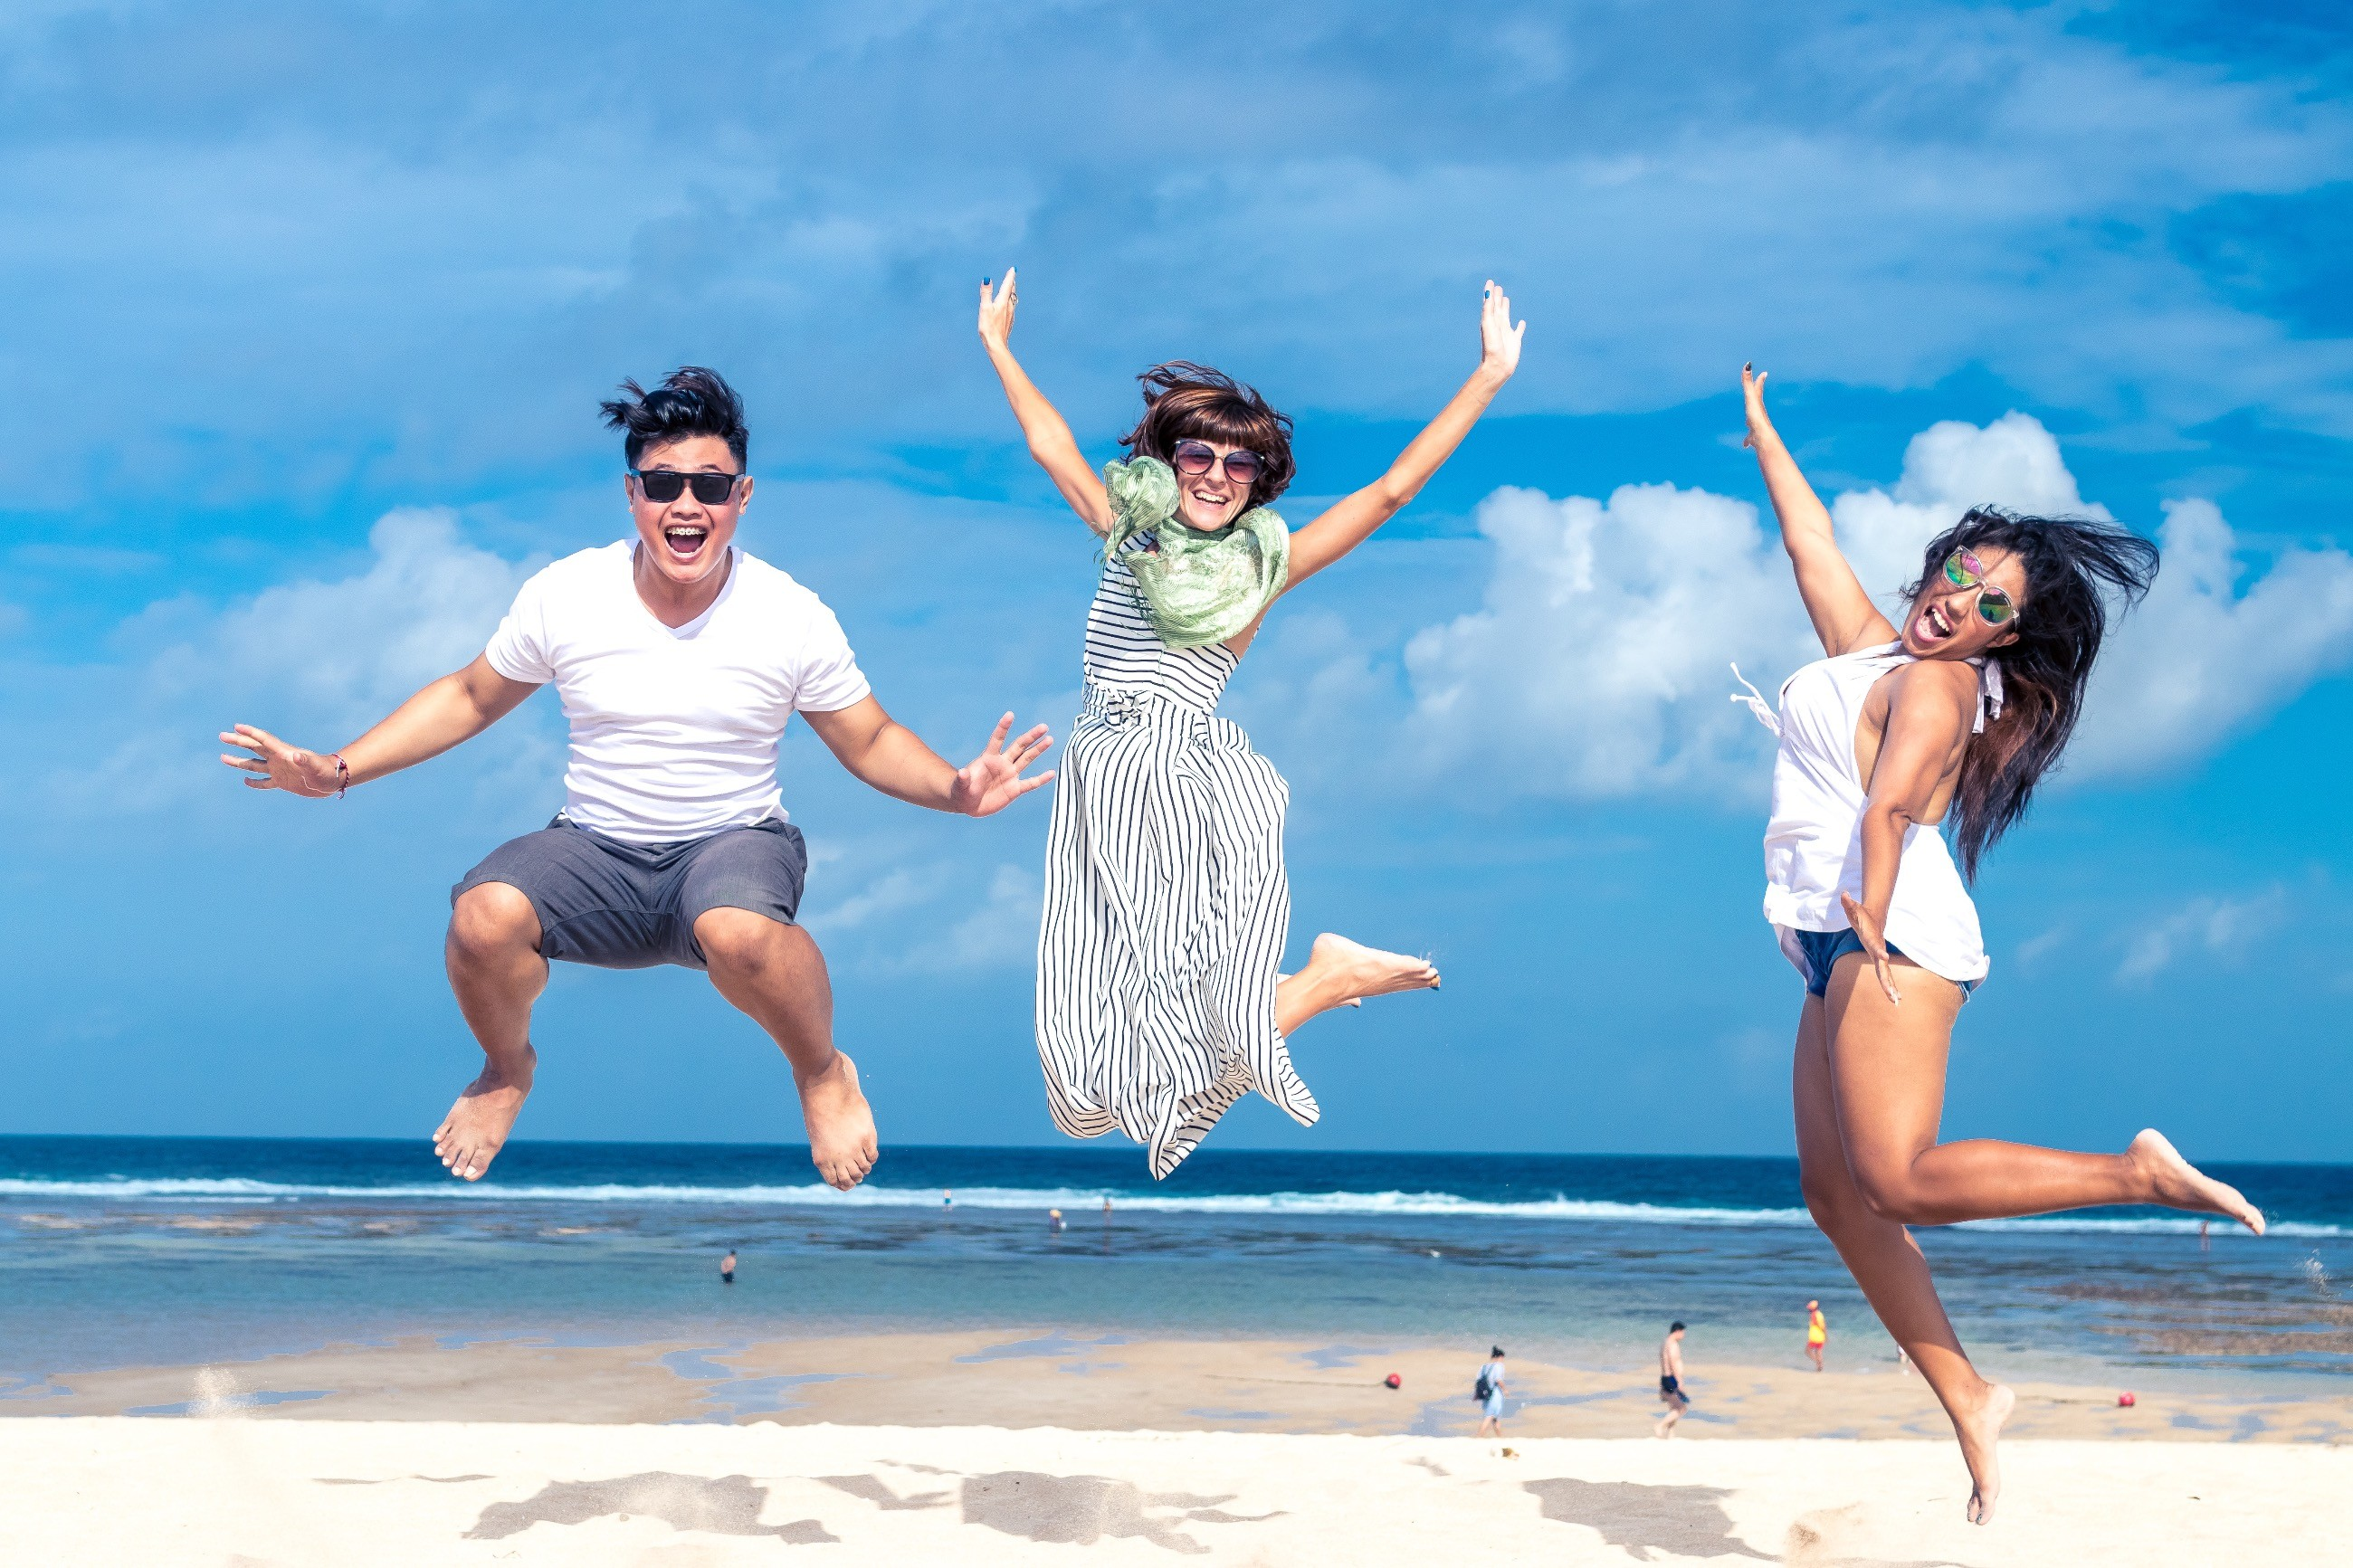 people beach jumping january goals